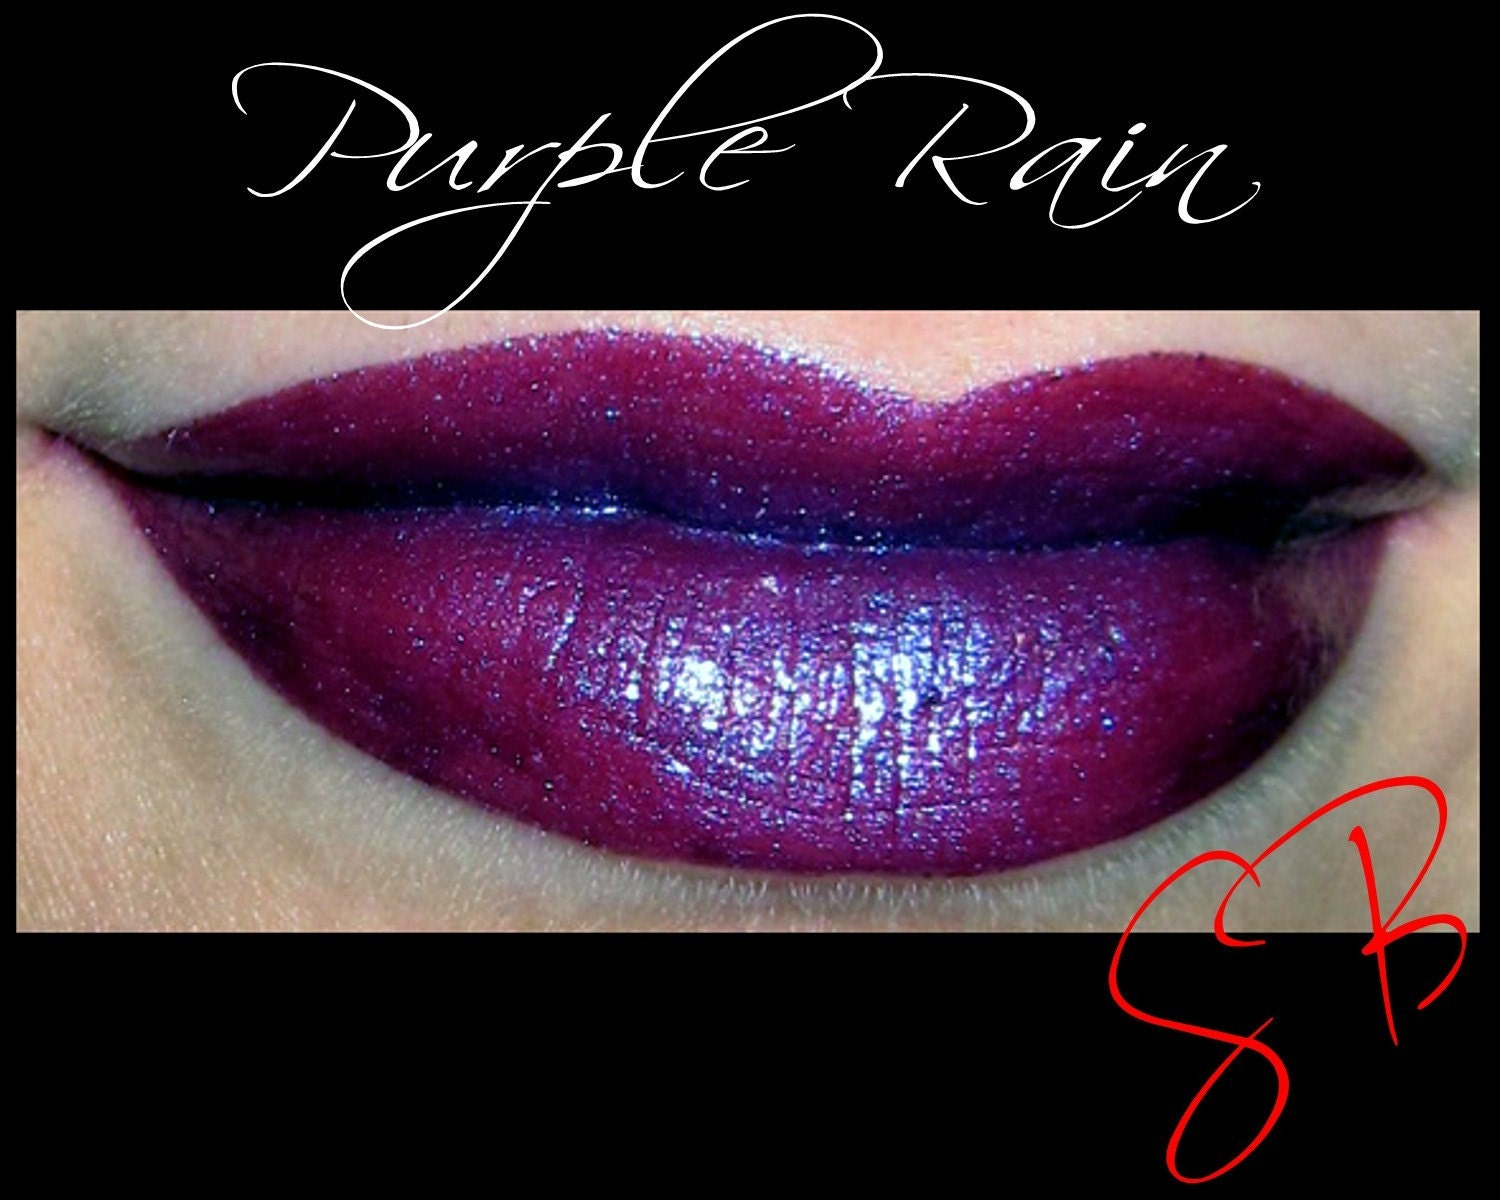 Purple Rain Mineral makeup Lipstick Dark red with purple